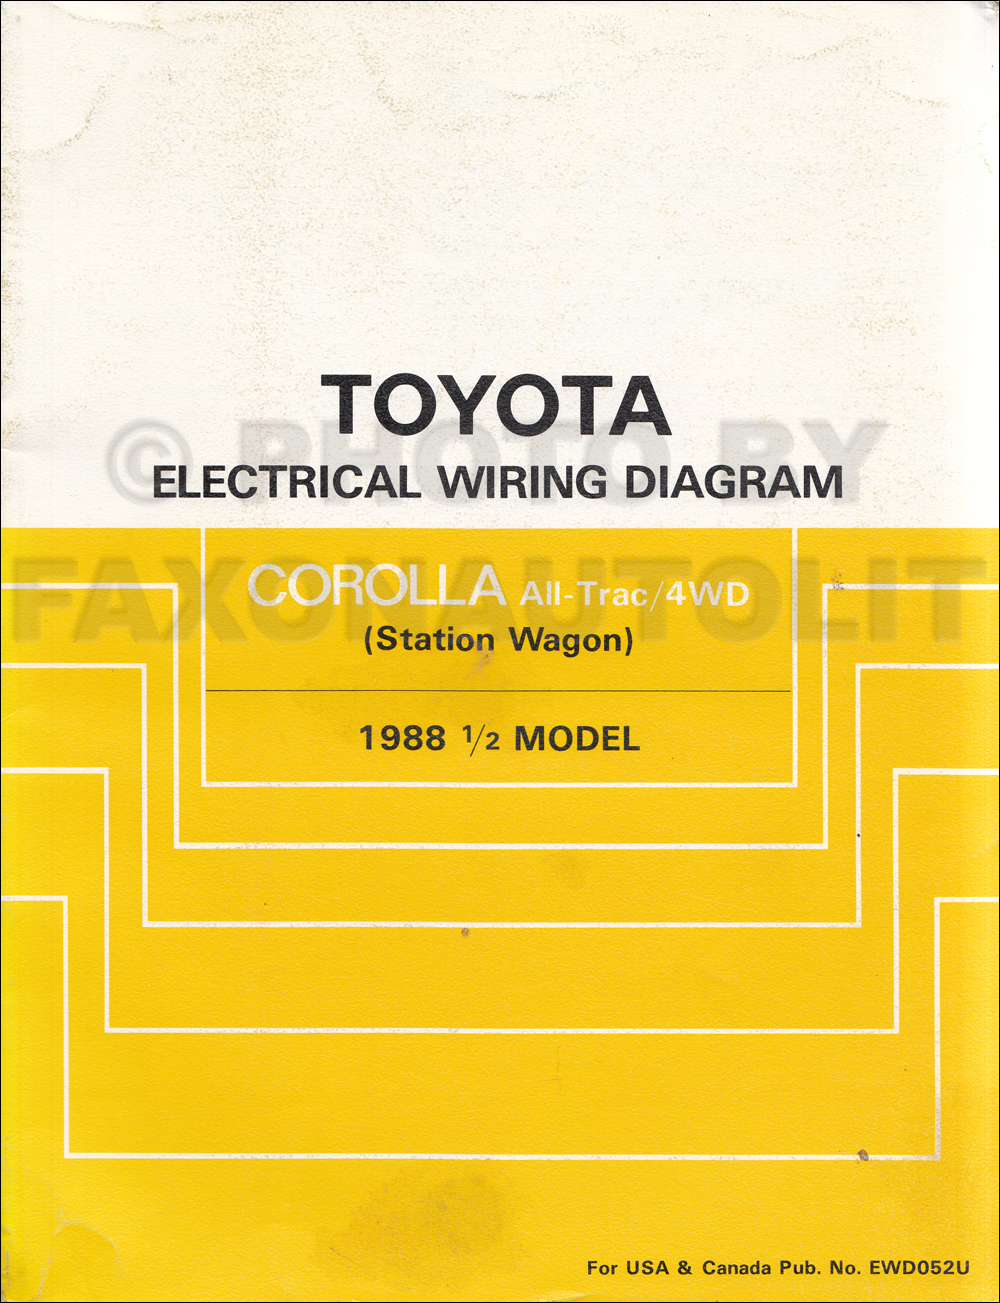 1988 Toyota Corolla All Trac 4wd Station Wagon Wiring Diagram Manual Original